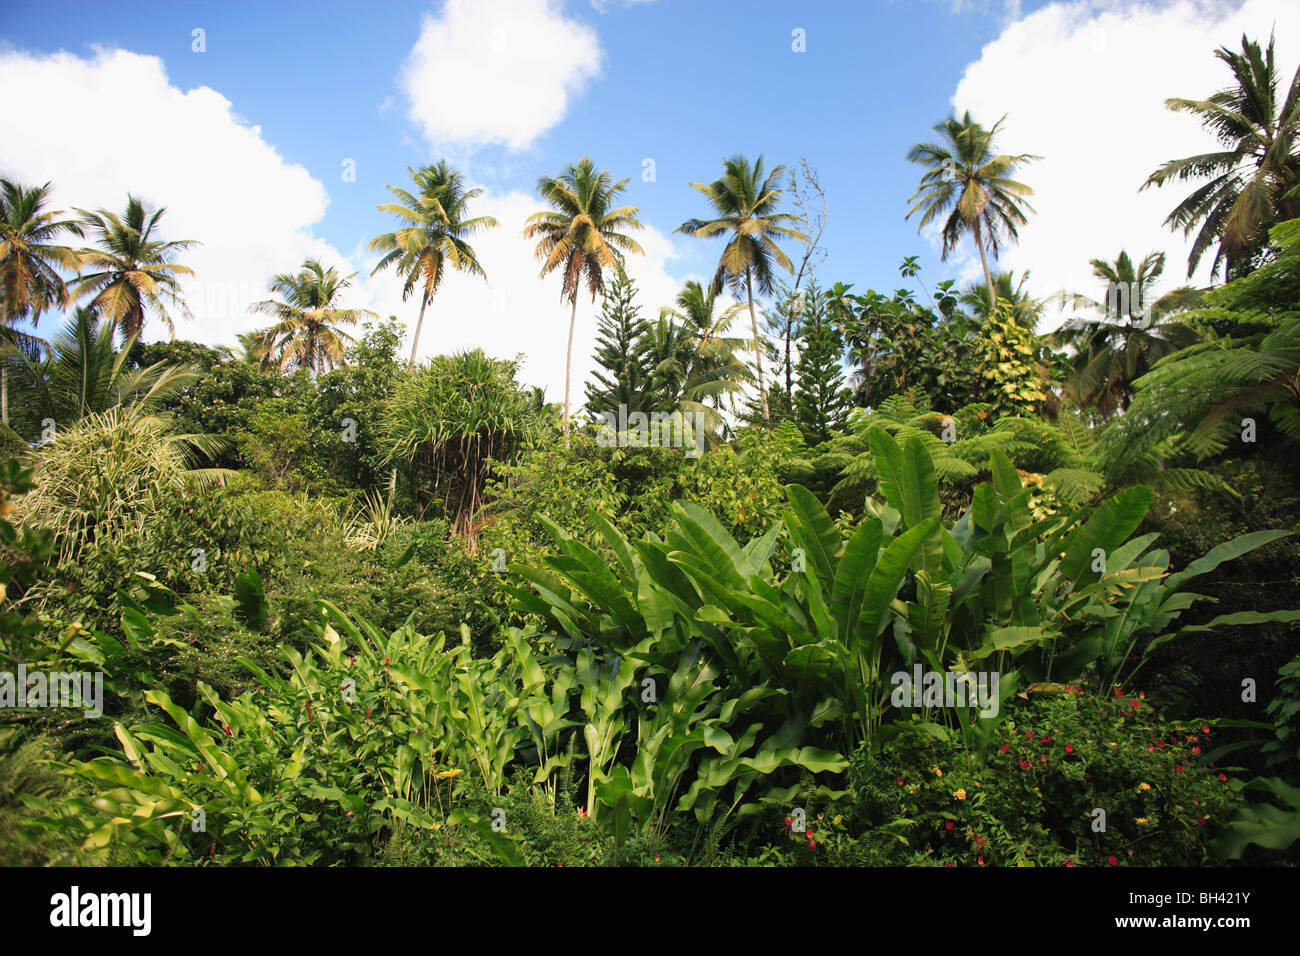 Tropical rain forest, Dominica, Caribbean - Stock Image